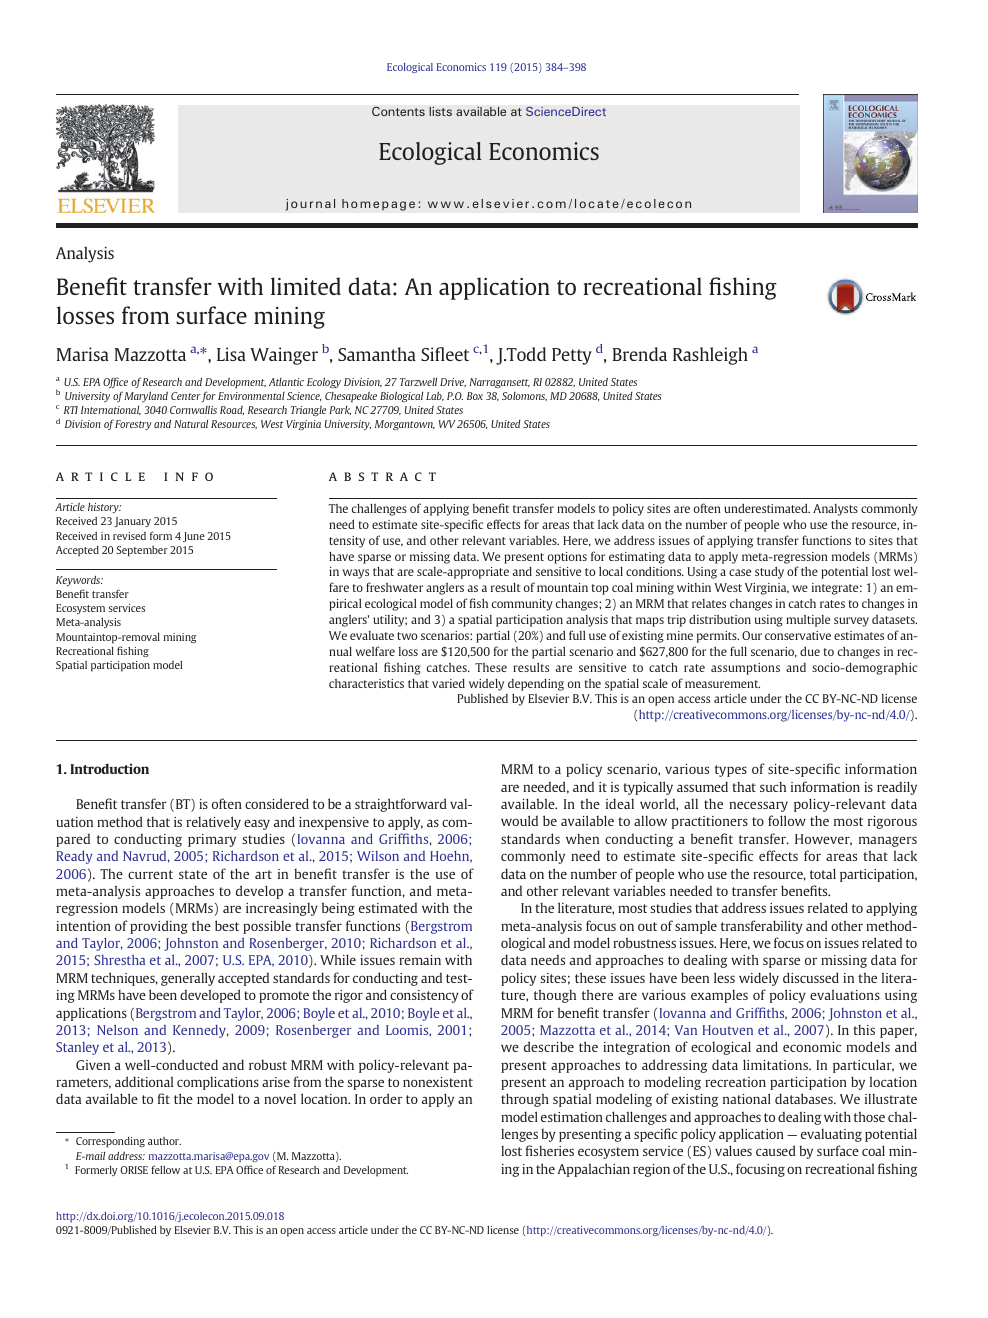 Benefit transfer with limited data: An application to